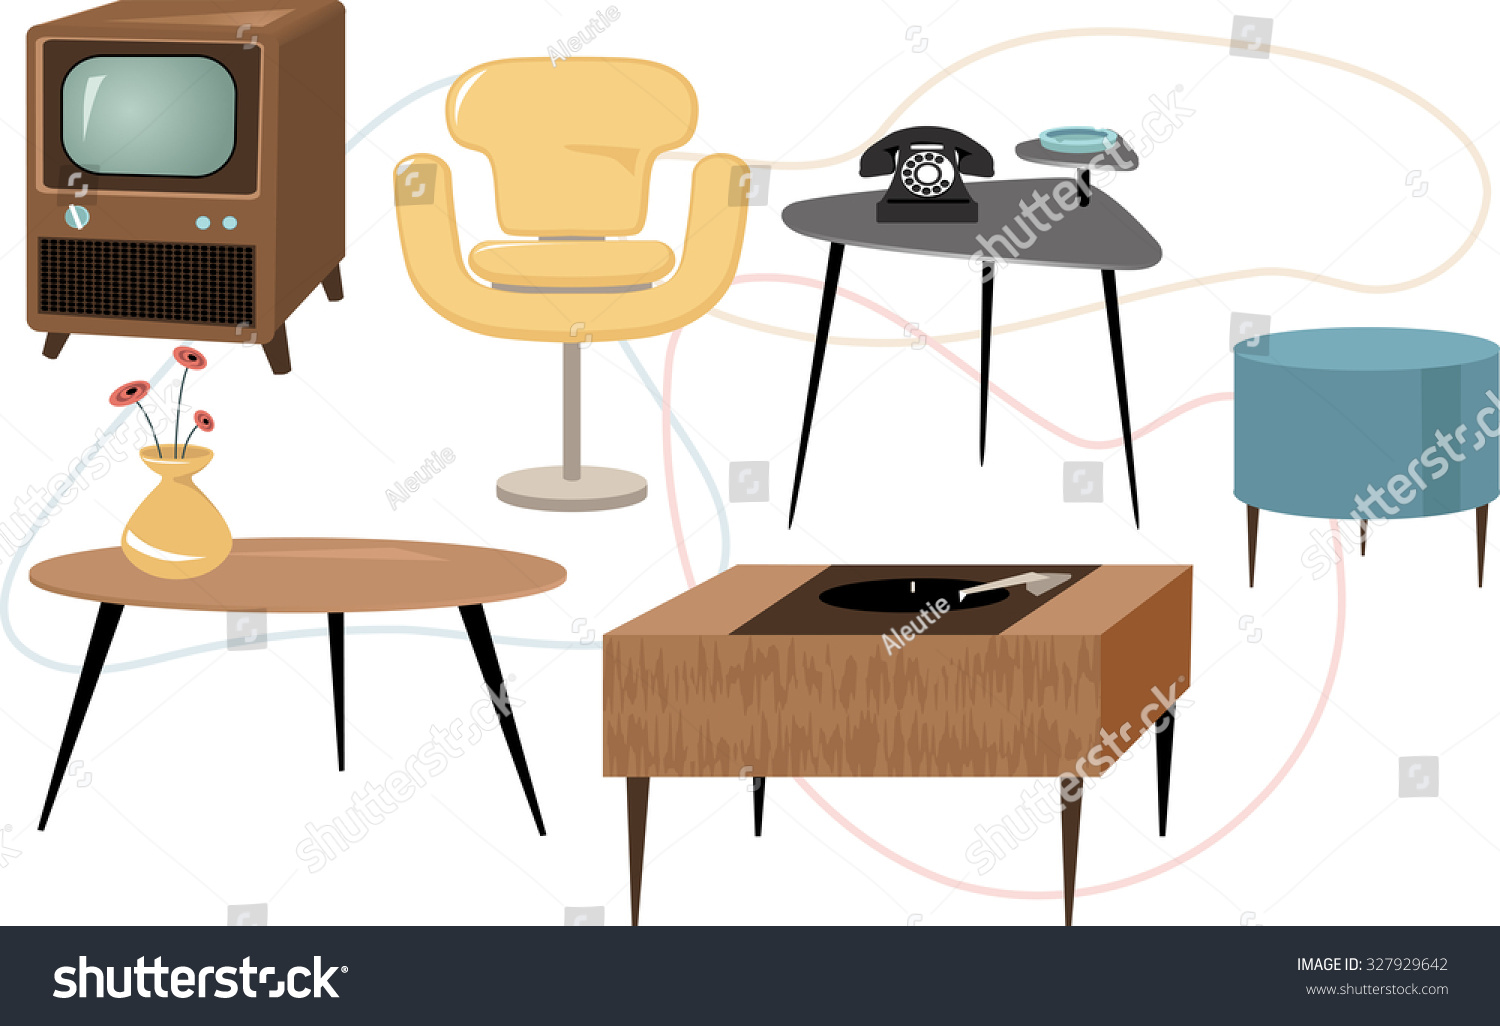 Set Of 1950s Style Mid Century Modern Furniture, EPS 8 Vector Illustration,  Generalized